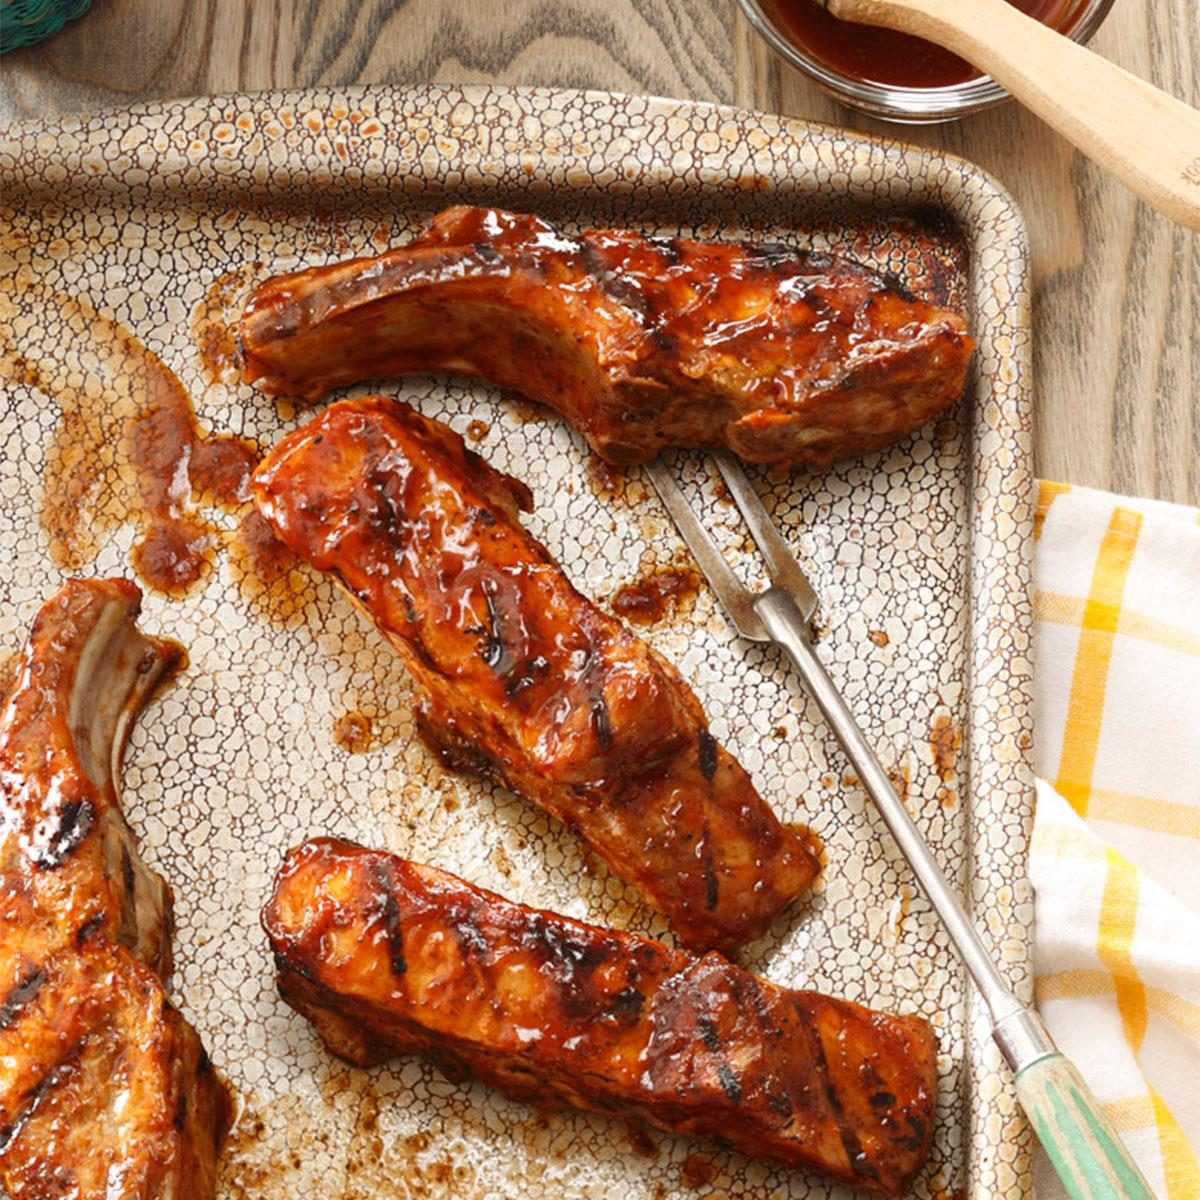 Country style grilled ribs recipe taste of home for Side dishes for bbq ribs and chicken